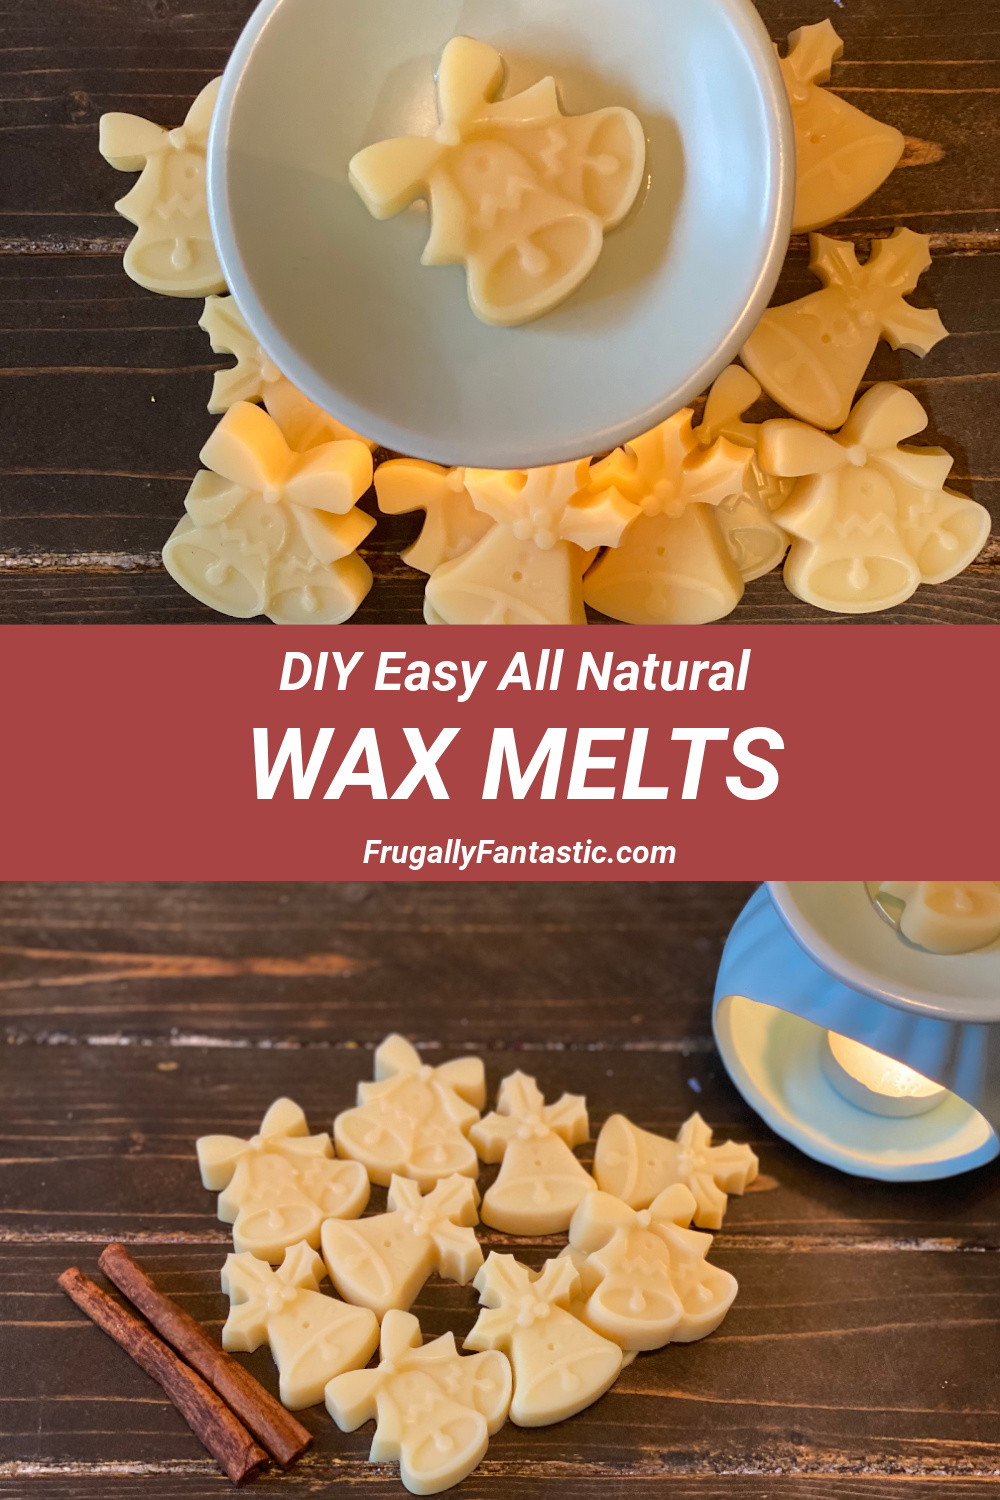 DIY Wax Melts FrugallyFantastic.com